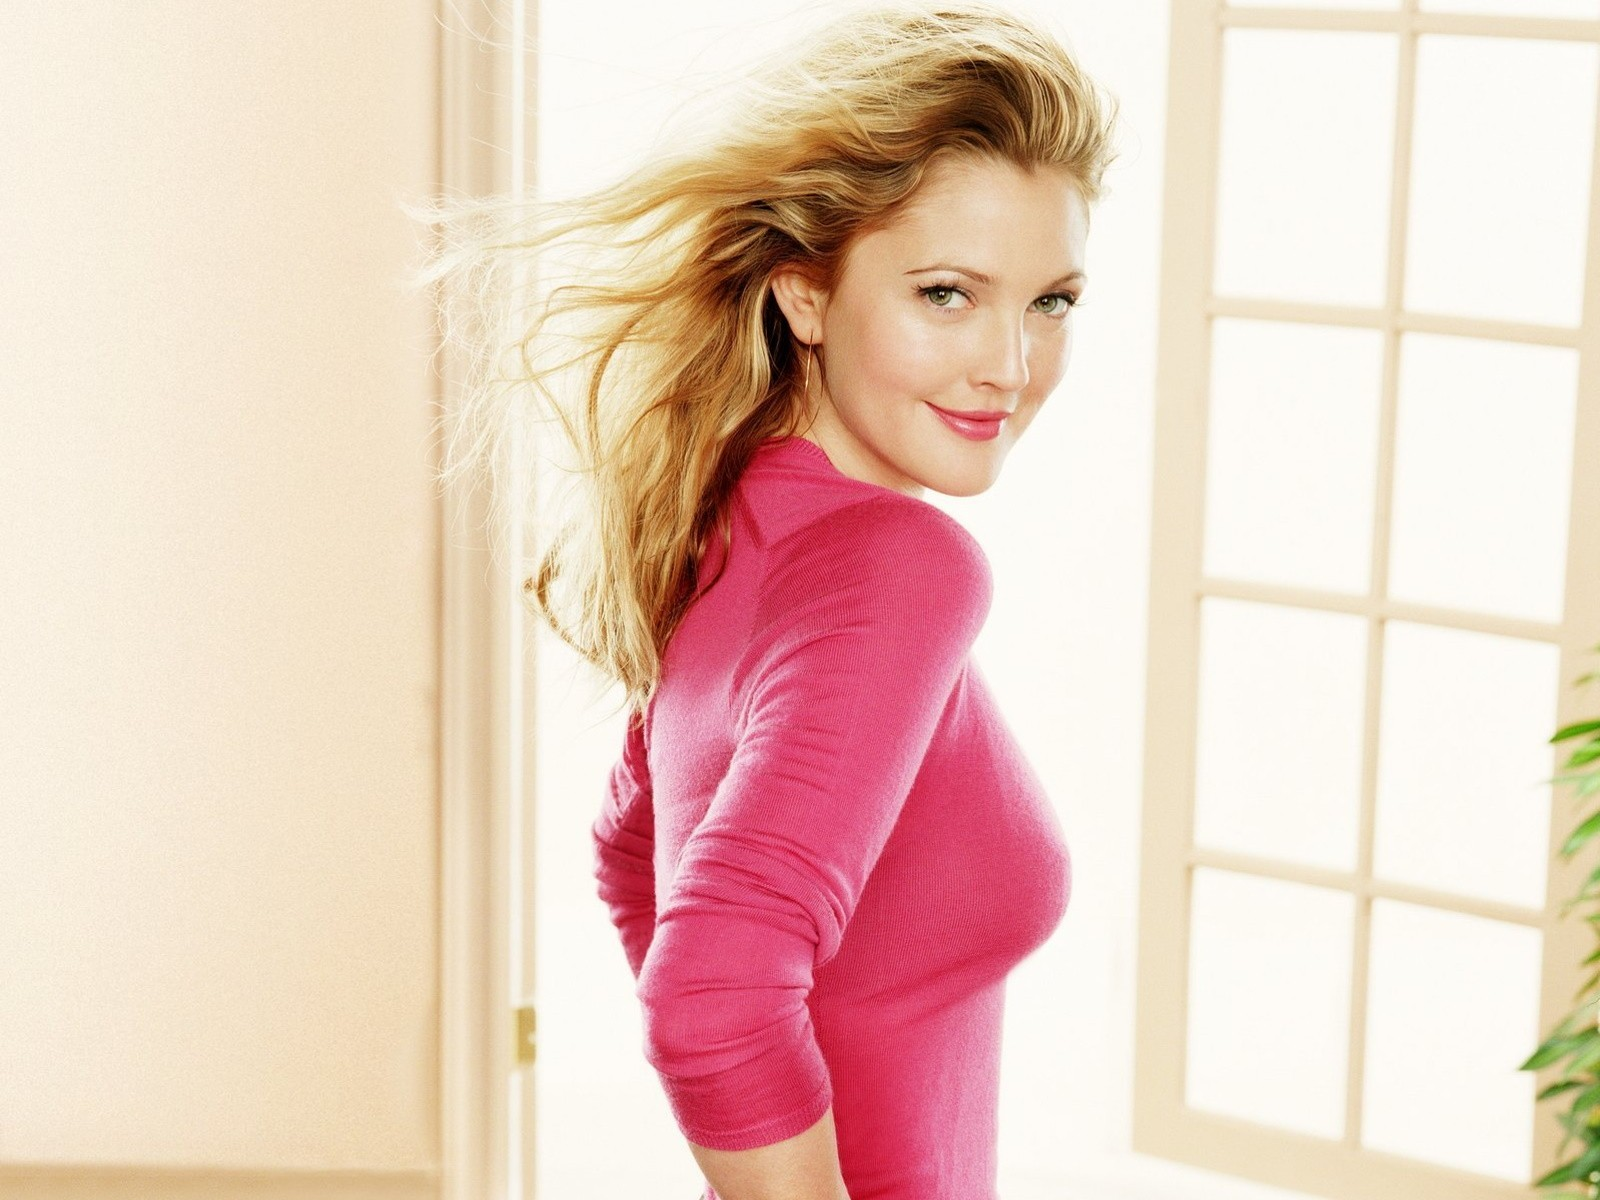 Drew Barrymore Wallpapers for Desktop